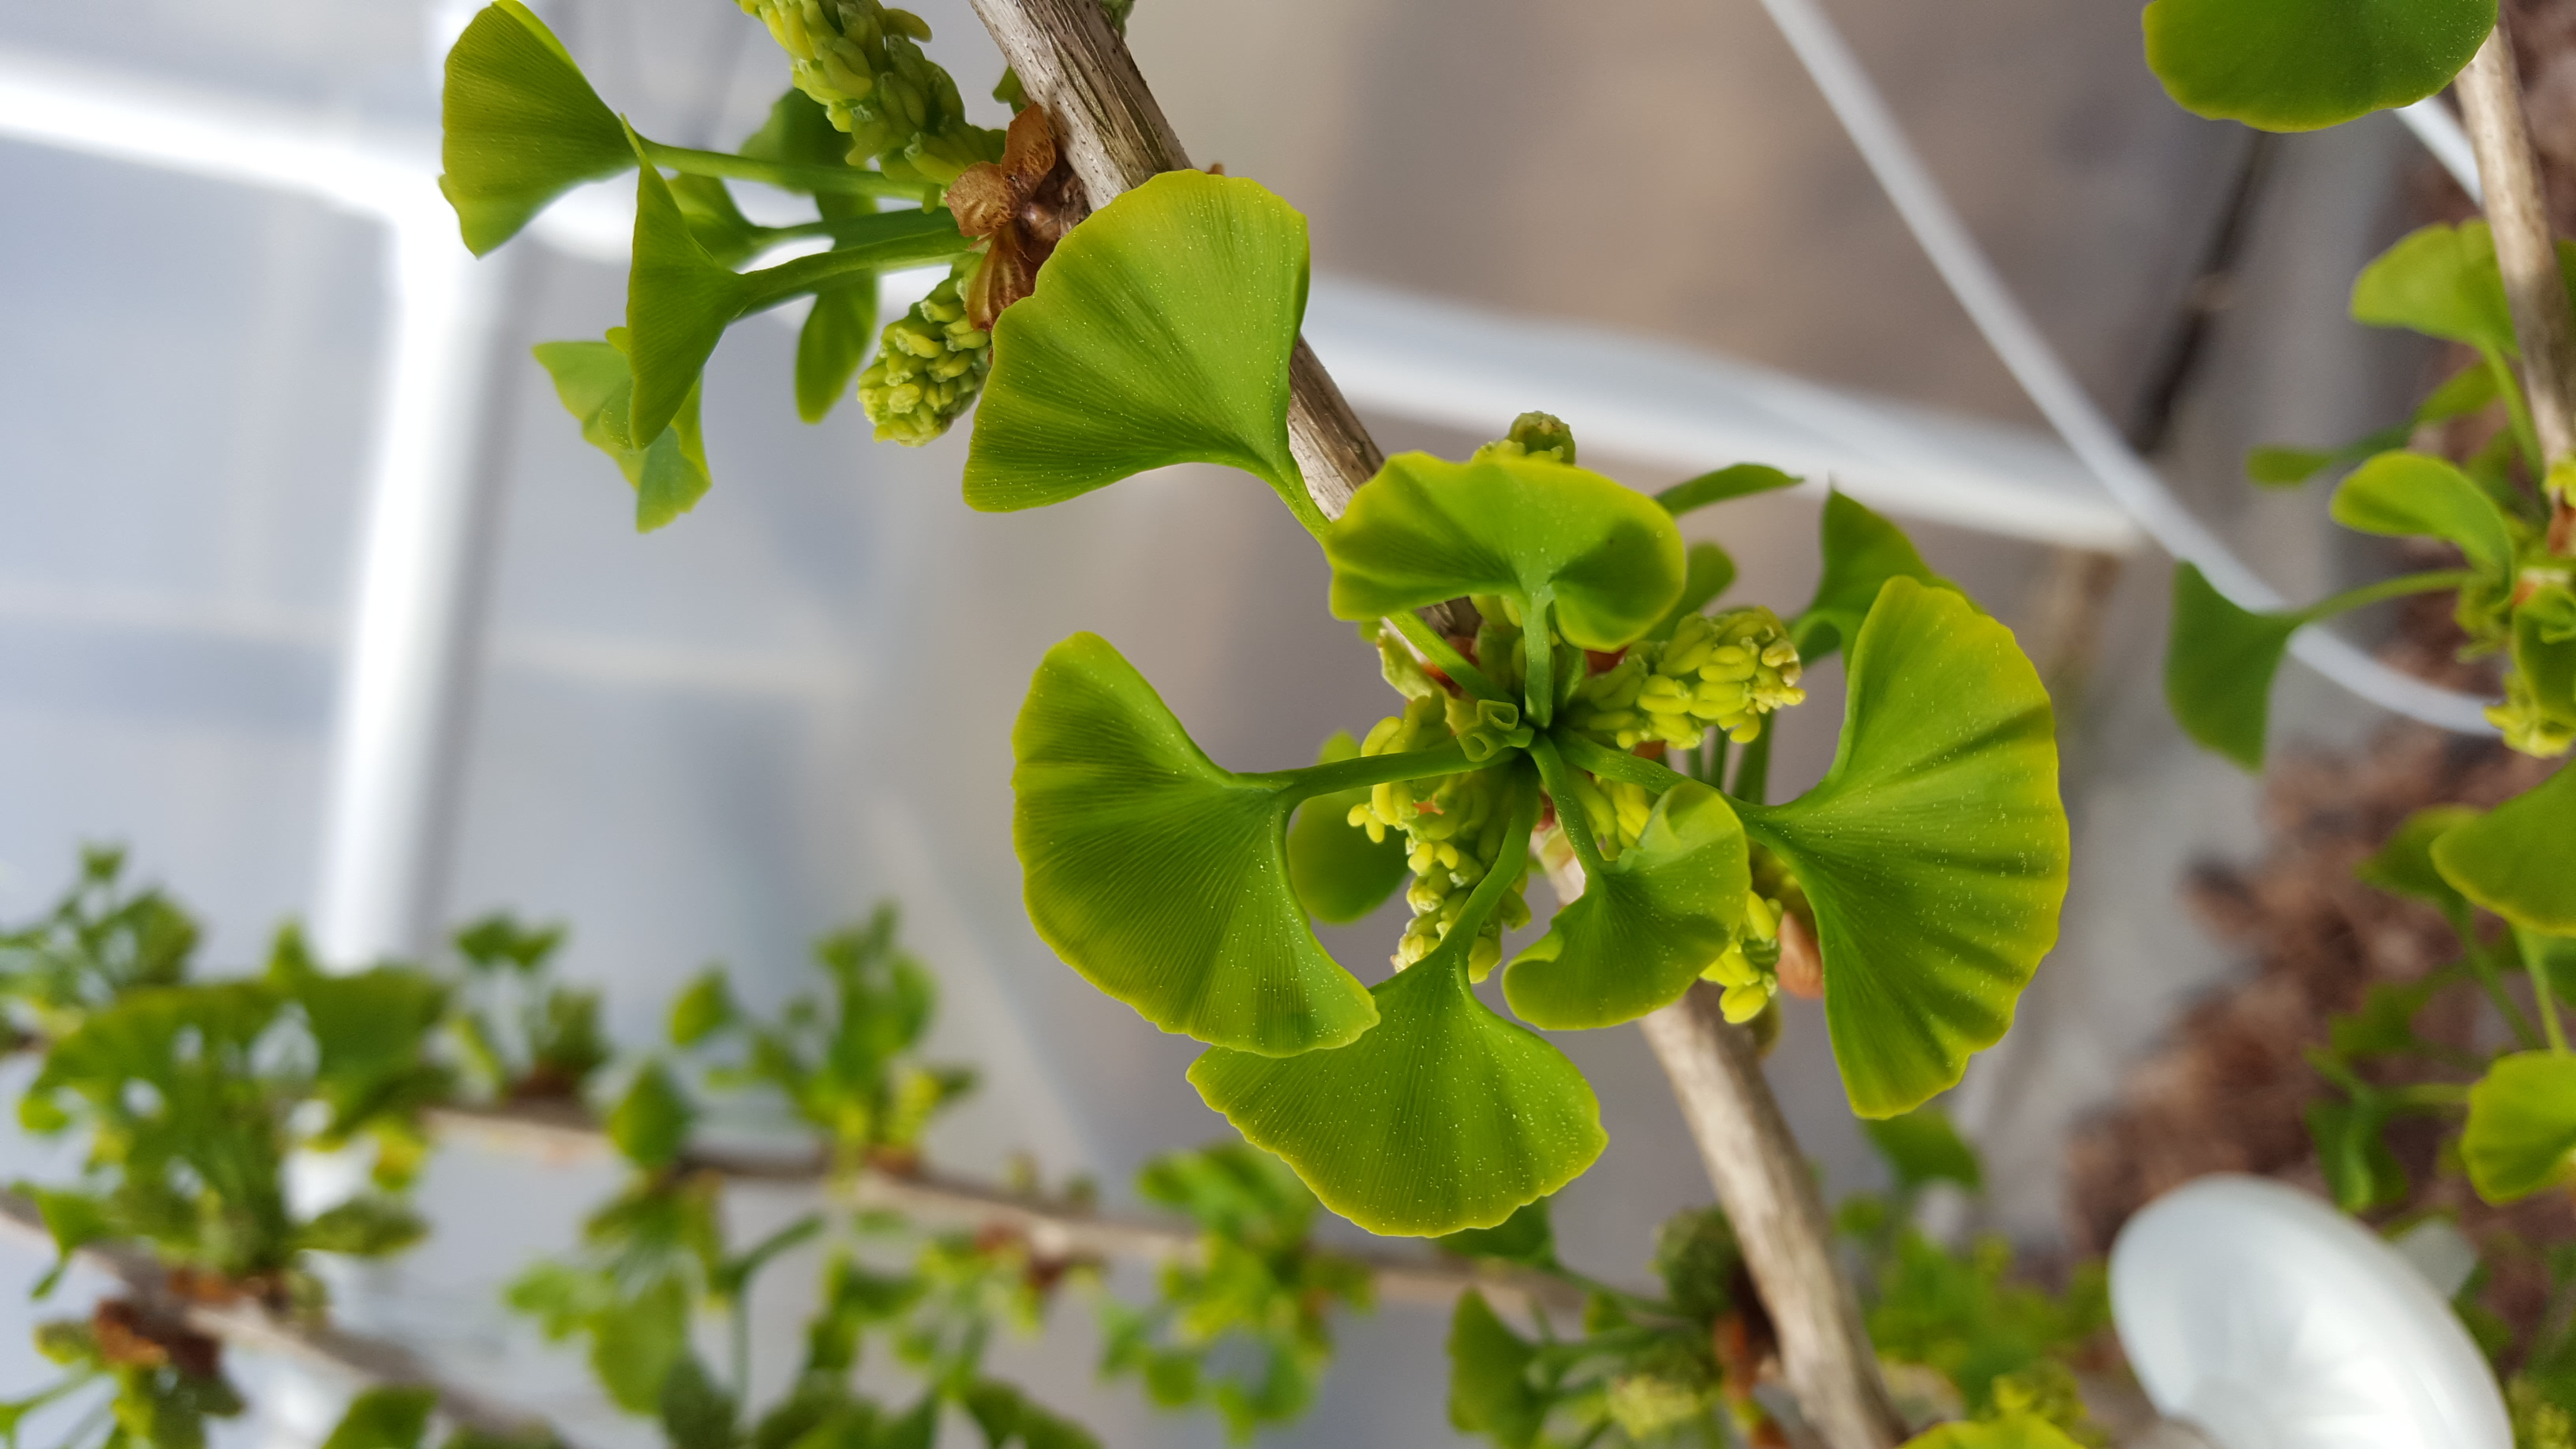 Ginkgo trees sprout new green leaves in the spring. (Rich Barclay, Smithsonian)